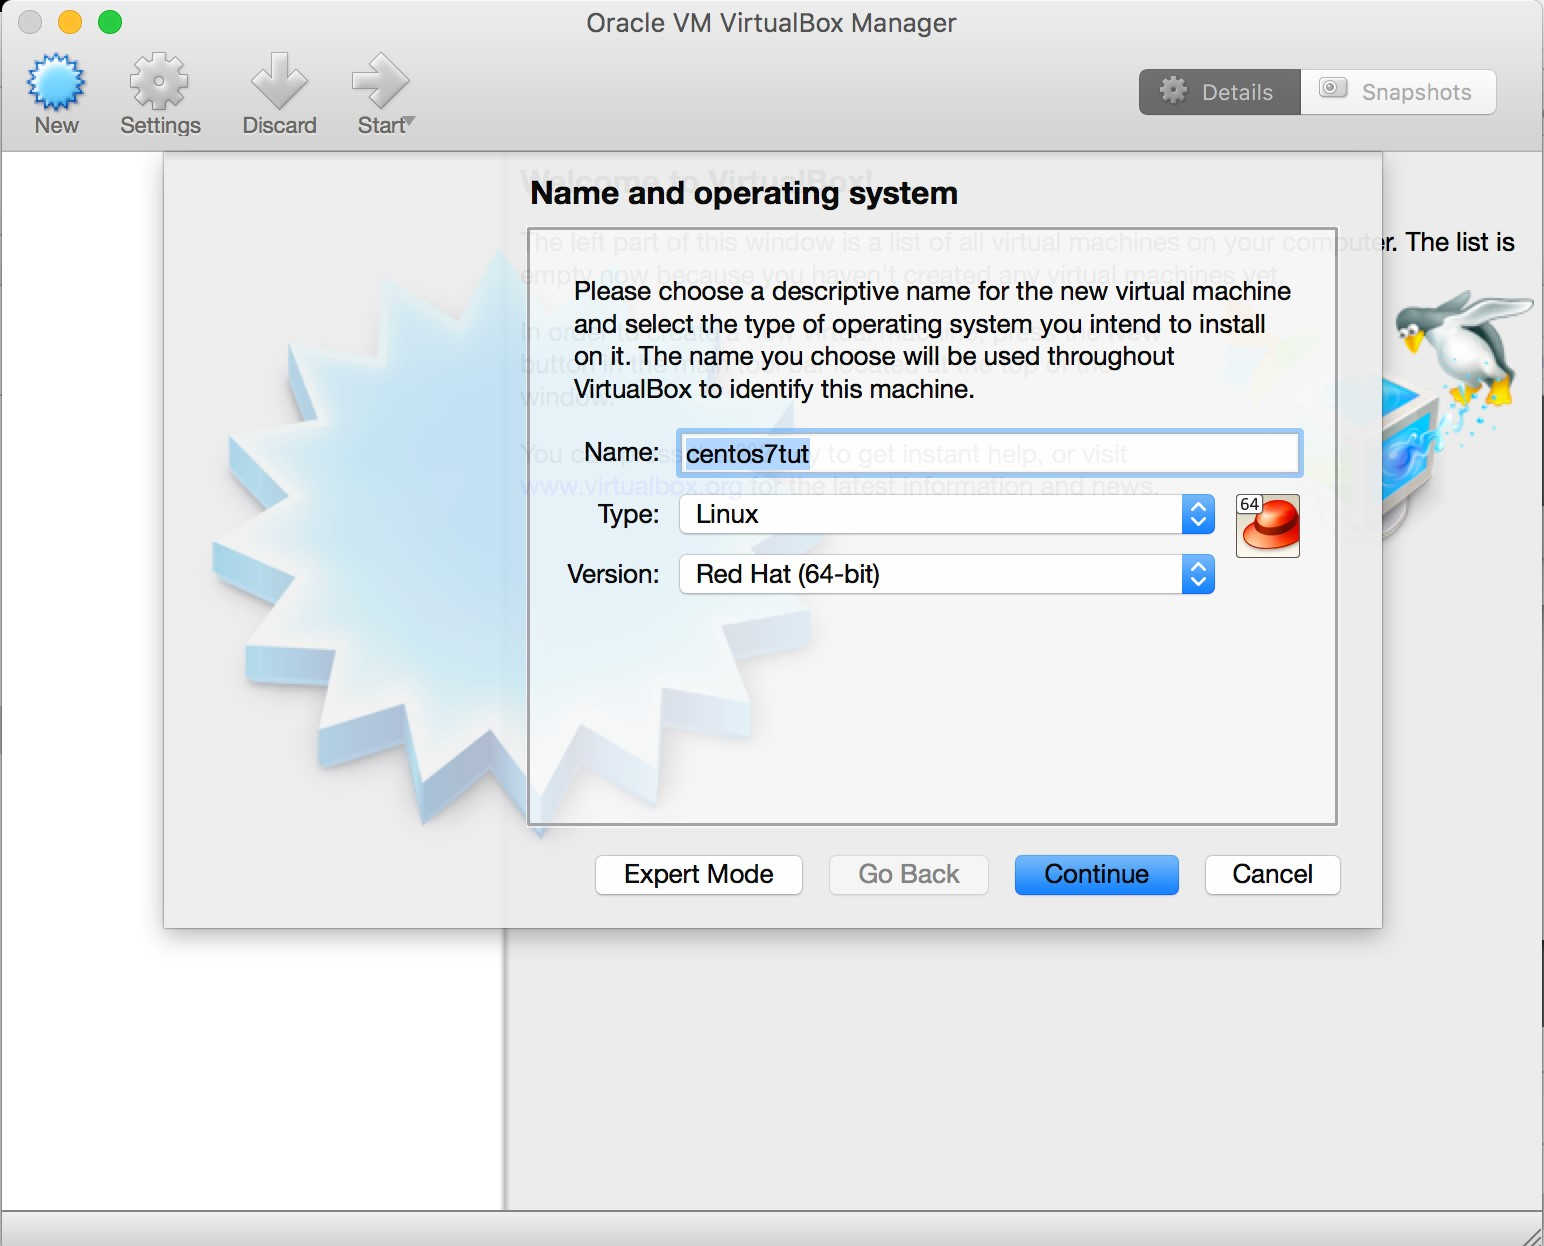 Specify Name and Operating System